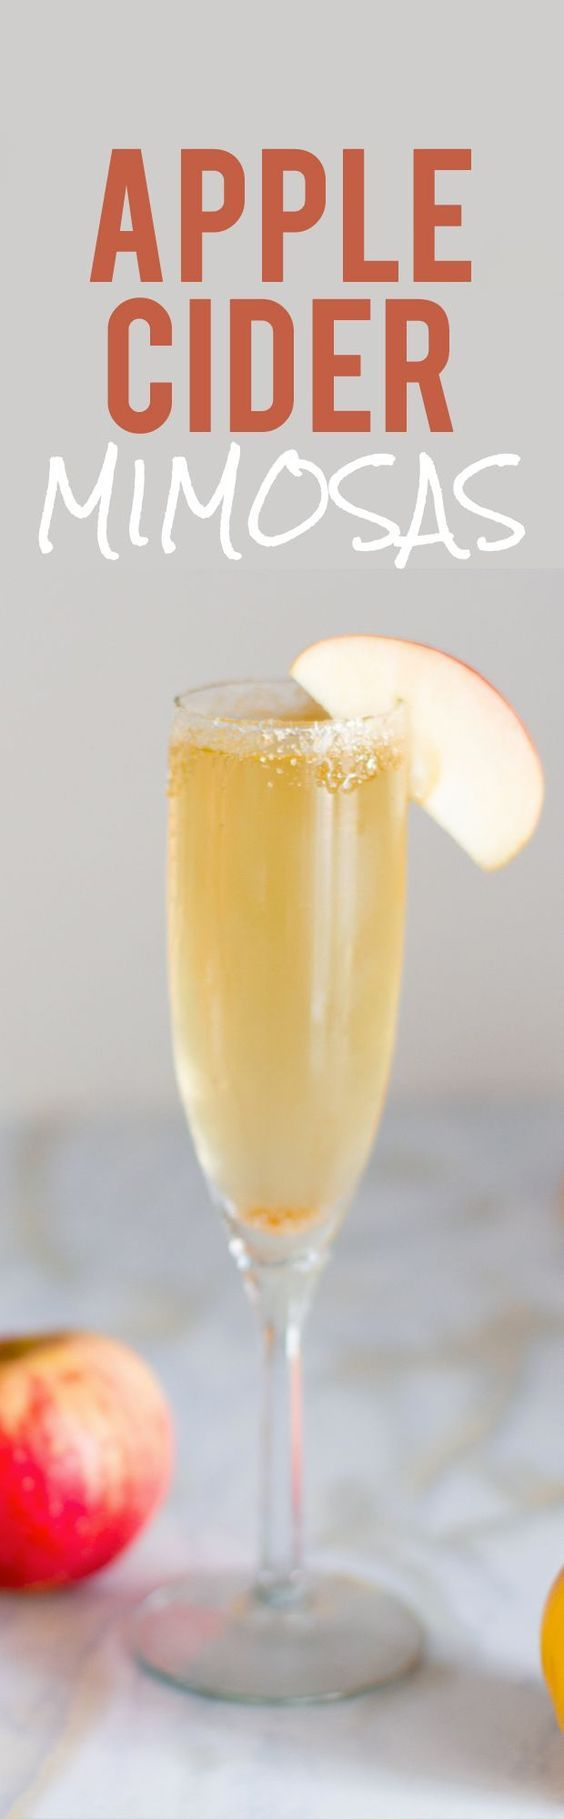 Apple Cider Mimosas. Need we say more? Perfect for fall!